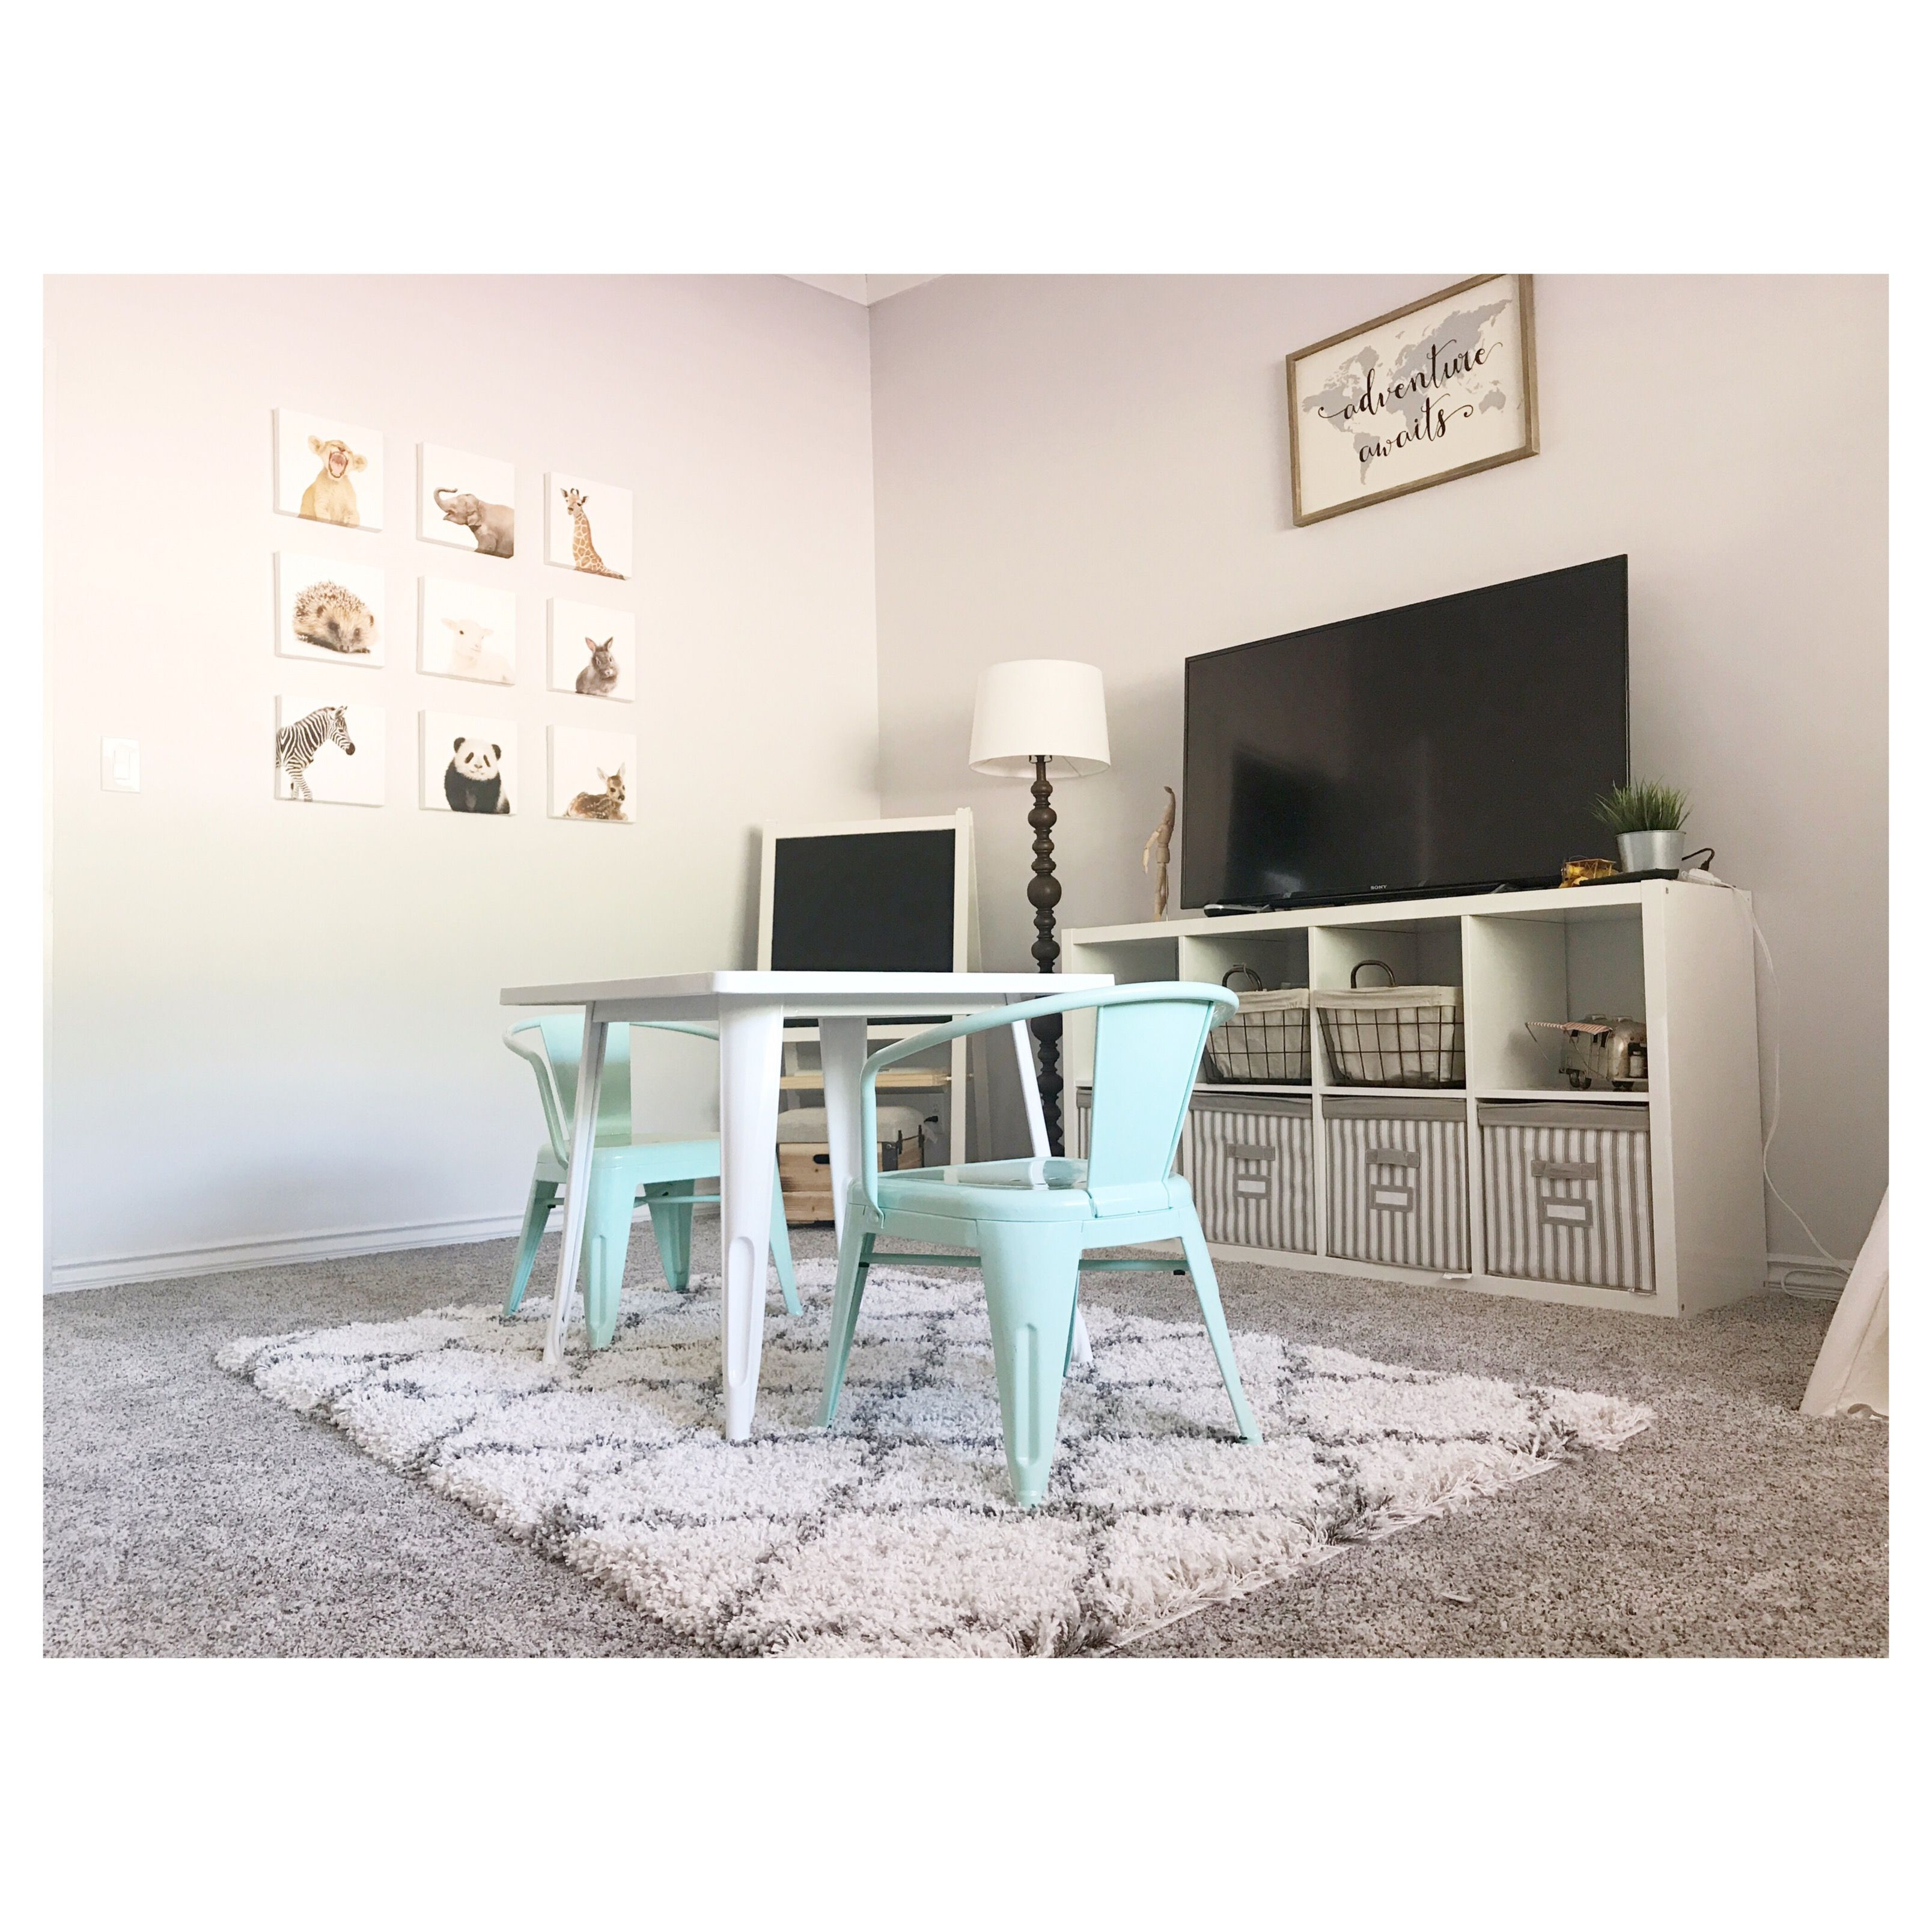 hobby lobby table and chairs childrens chair covers fixer upper playroom target kids ikea kallax sony tv fanatic homegoodness